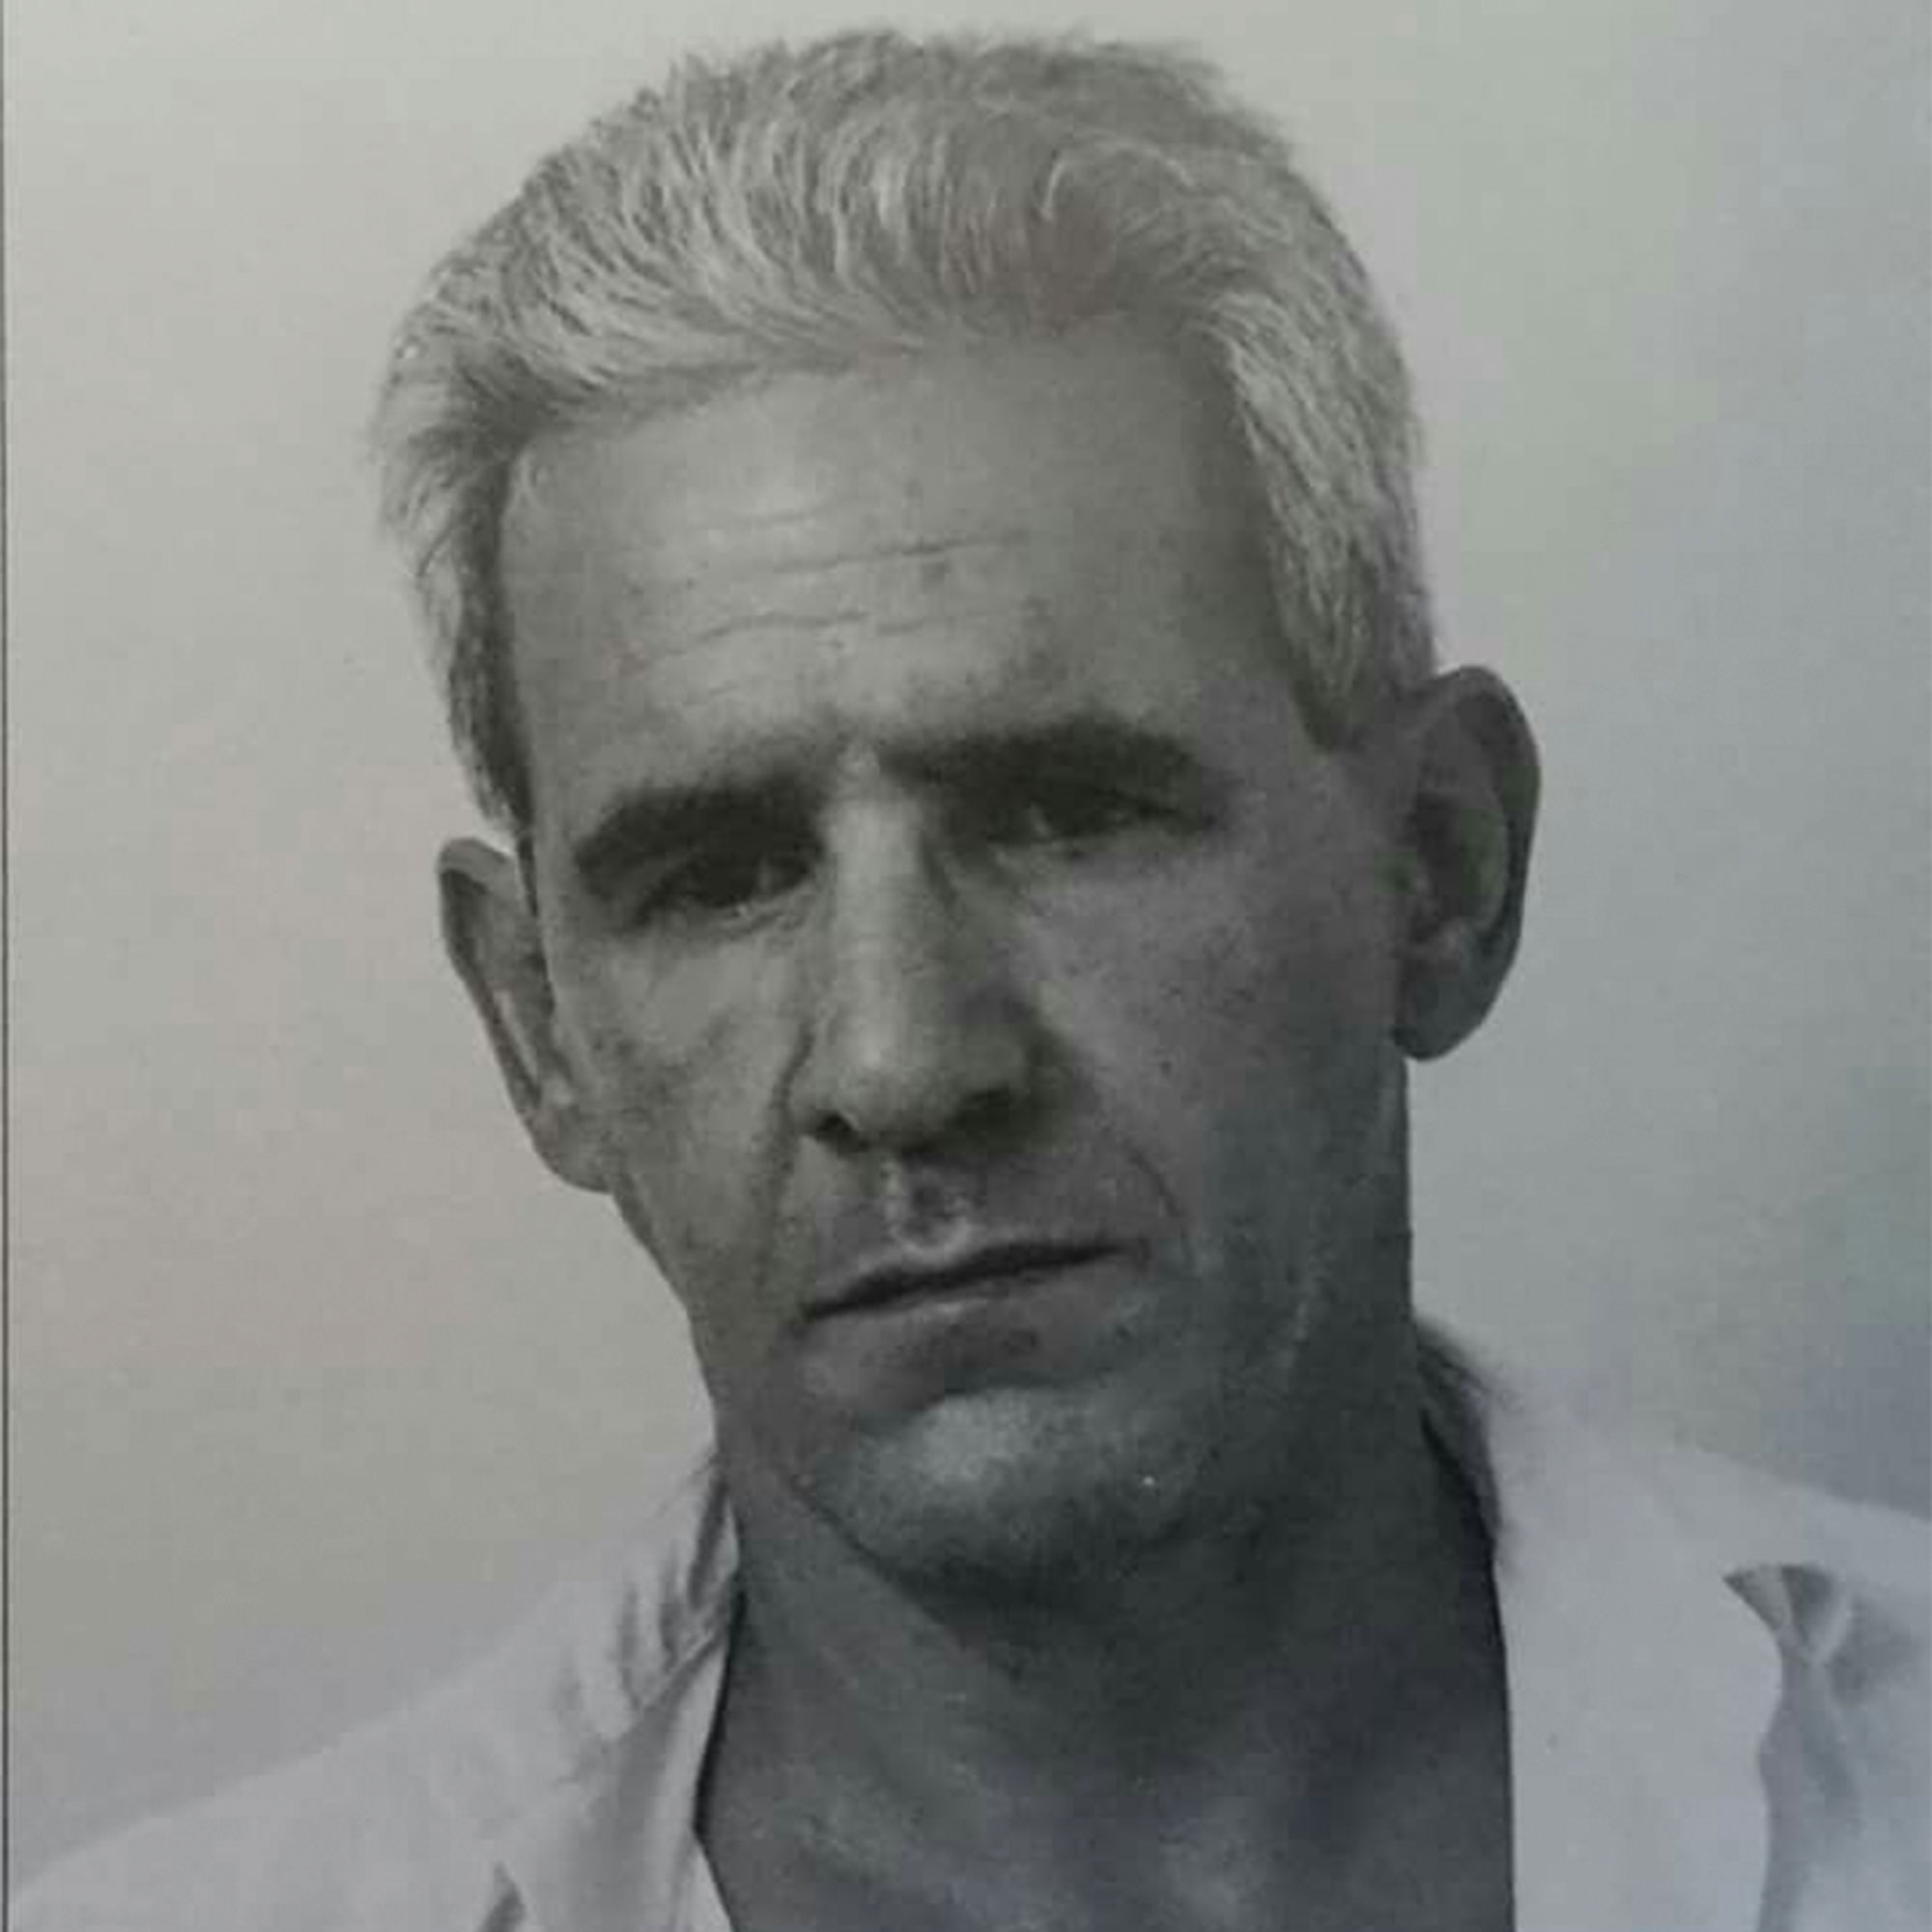 hitman Nicholas 'Nicky Slim' Calabrese, now in the Federal Witness Protection Program